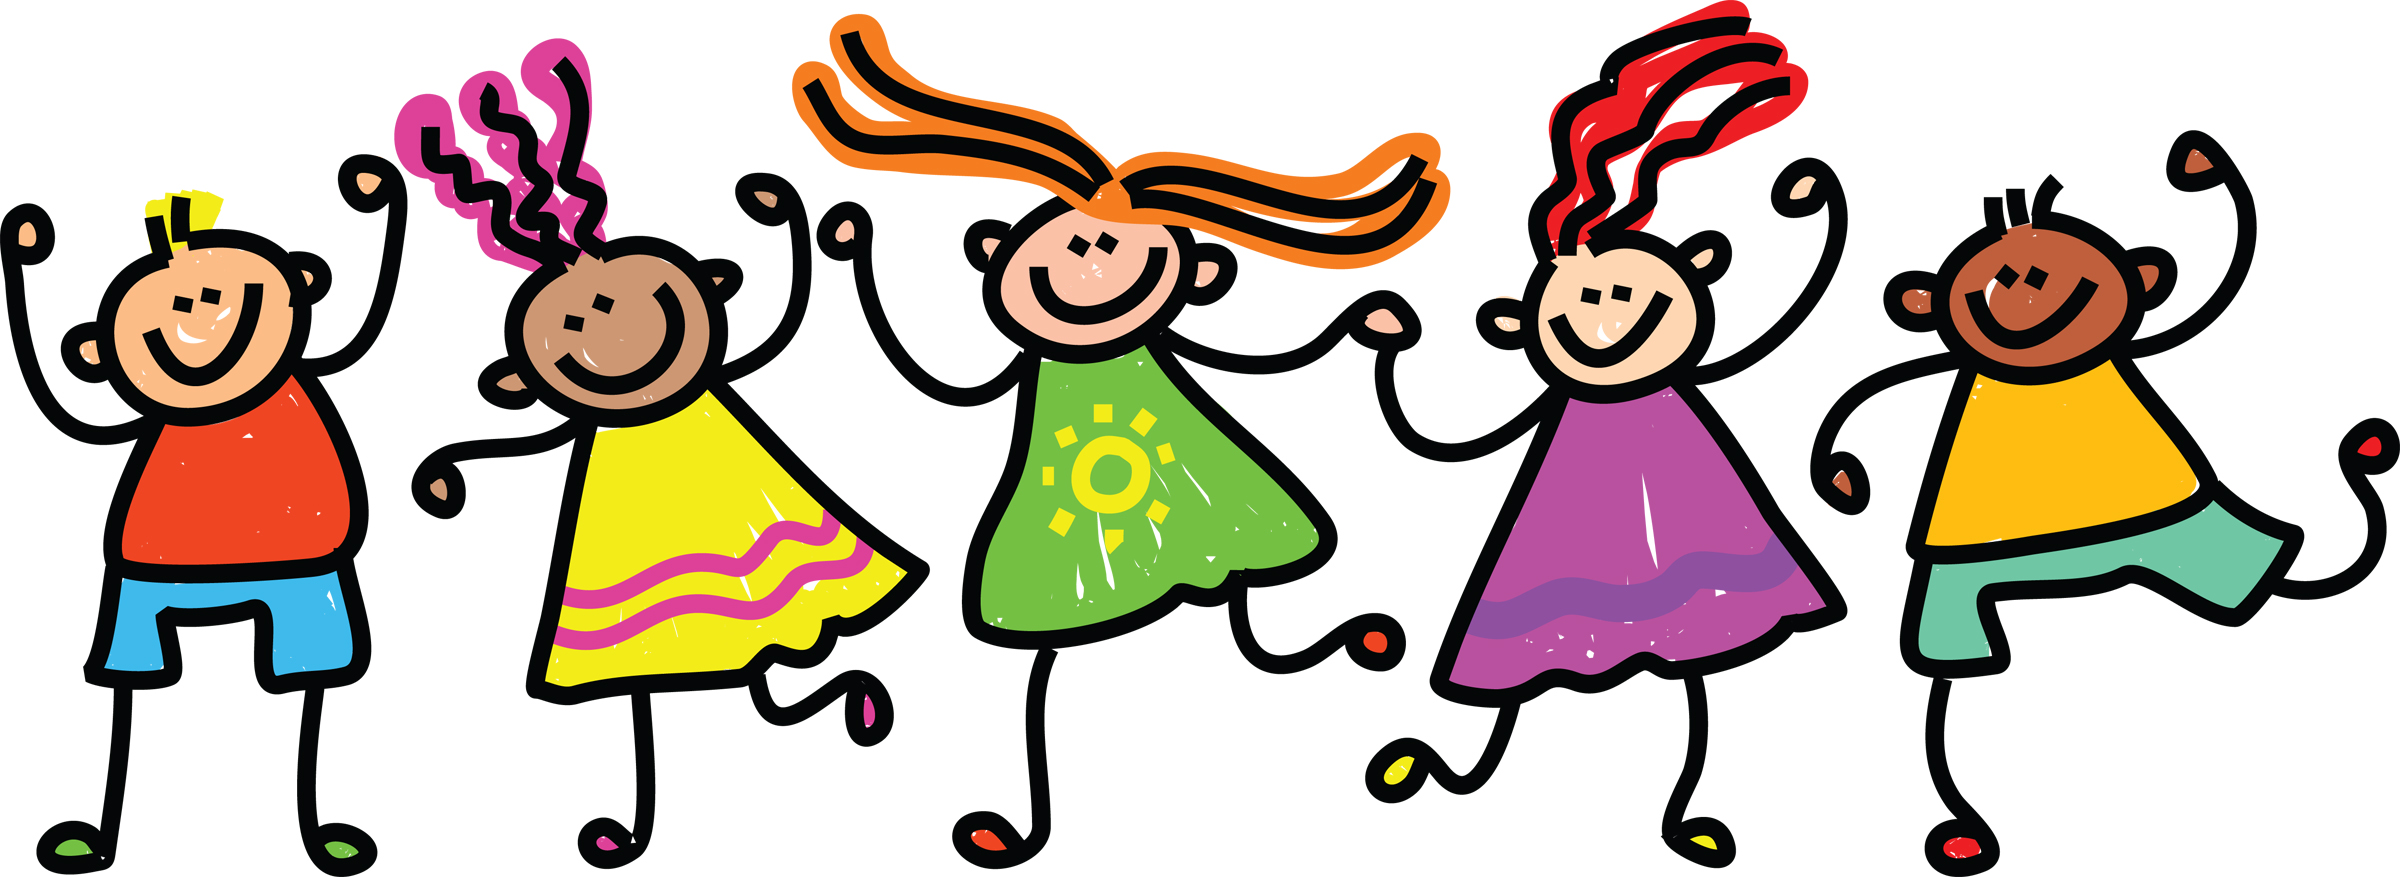 Danse clipart elementary school 2 Dancing dance art Cliparting